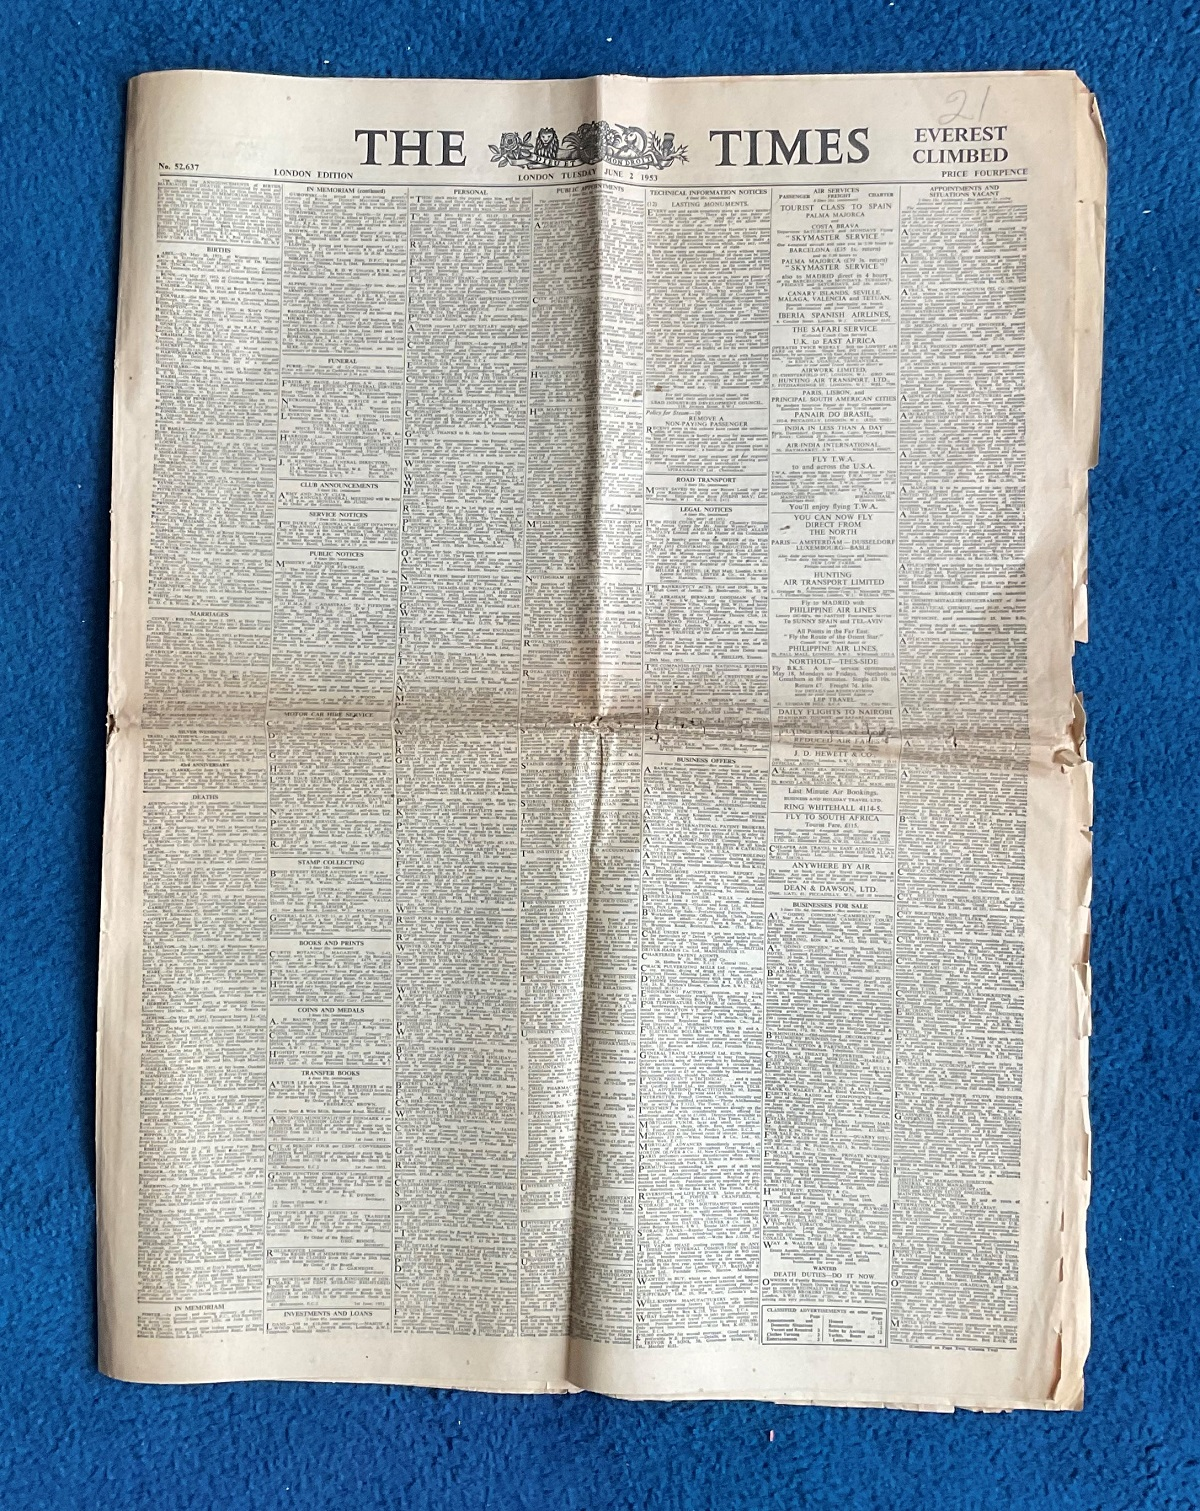 1953 The Times Newspaper June 2nd London Edition Ever Climbed achieved on the 29th of May 1953 by - Image 2 of 2